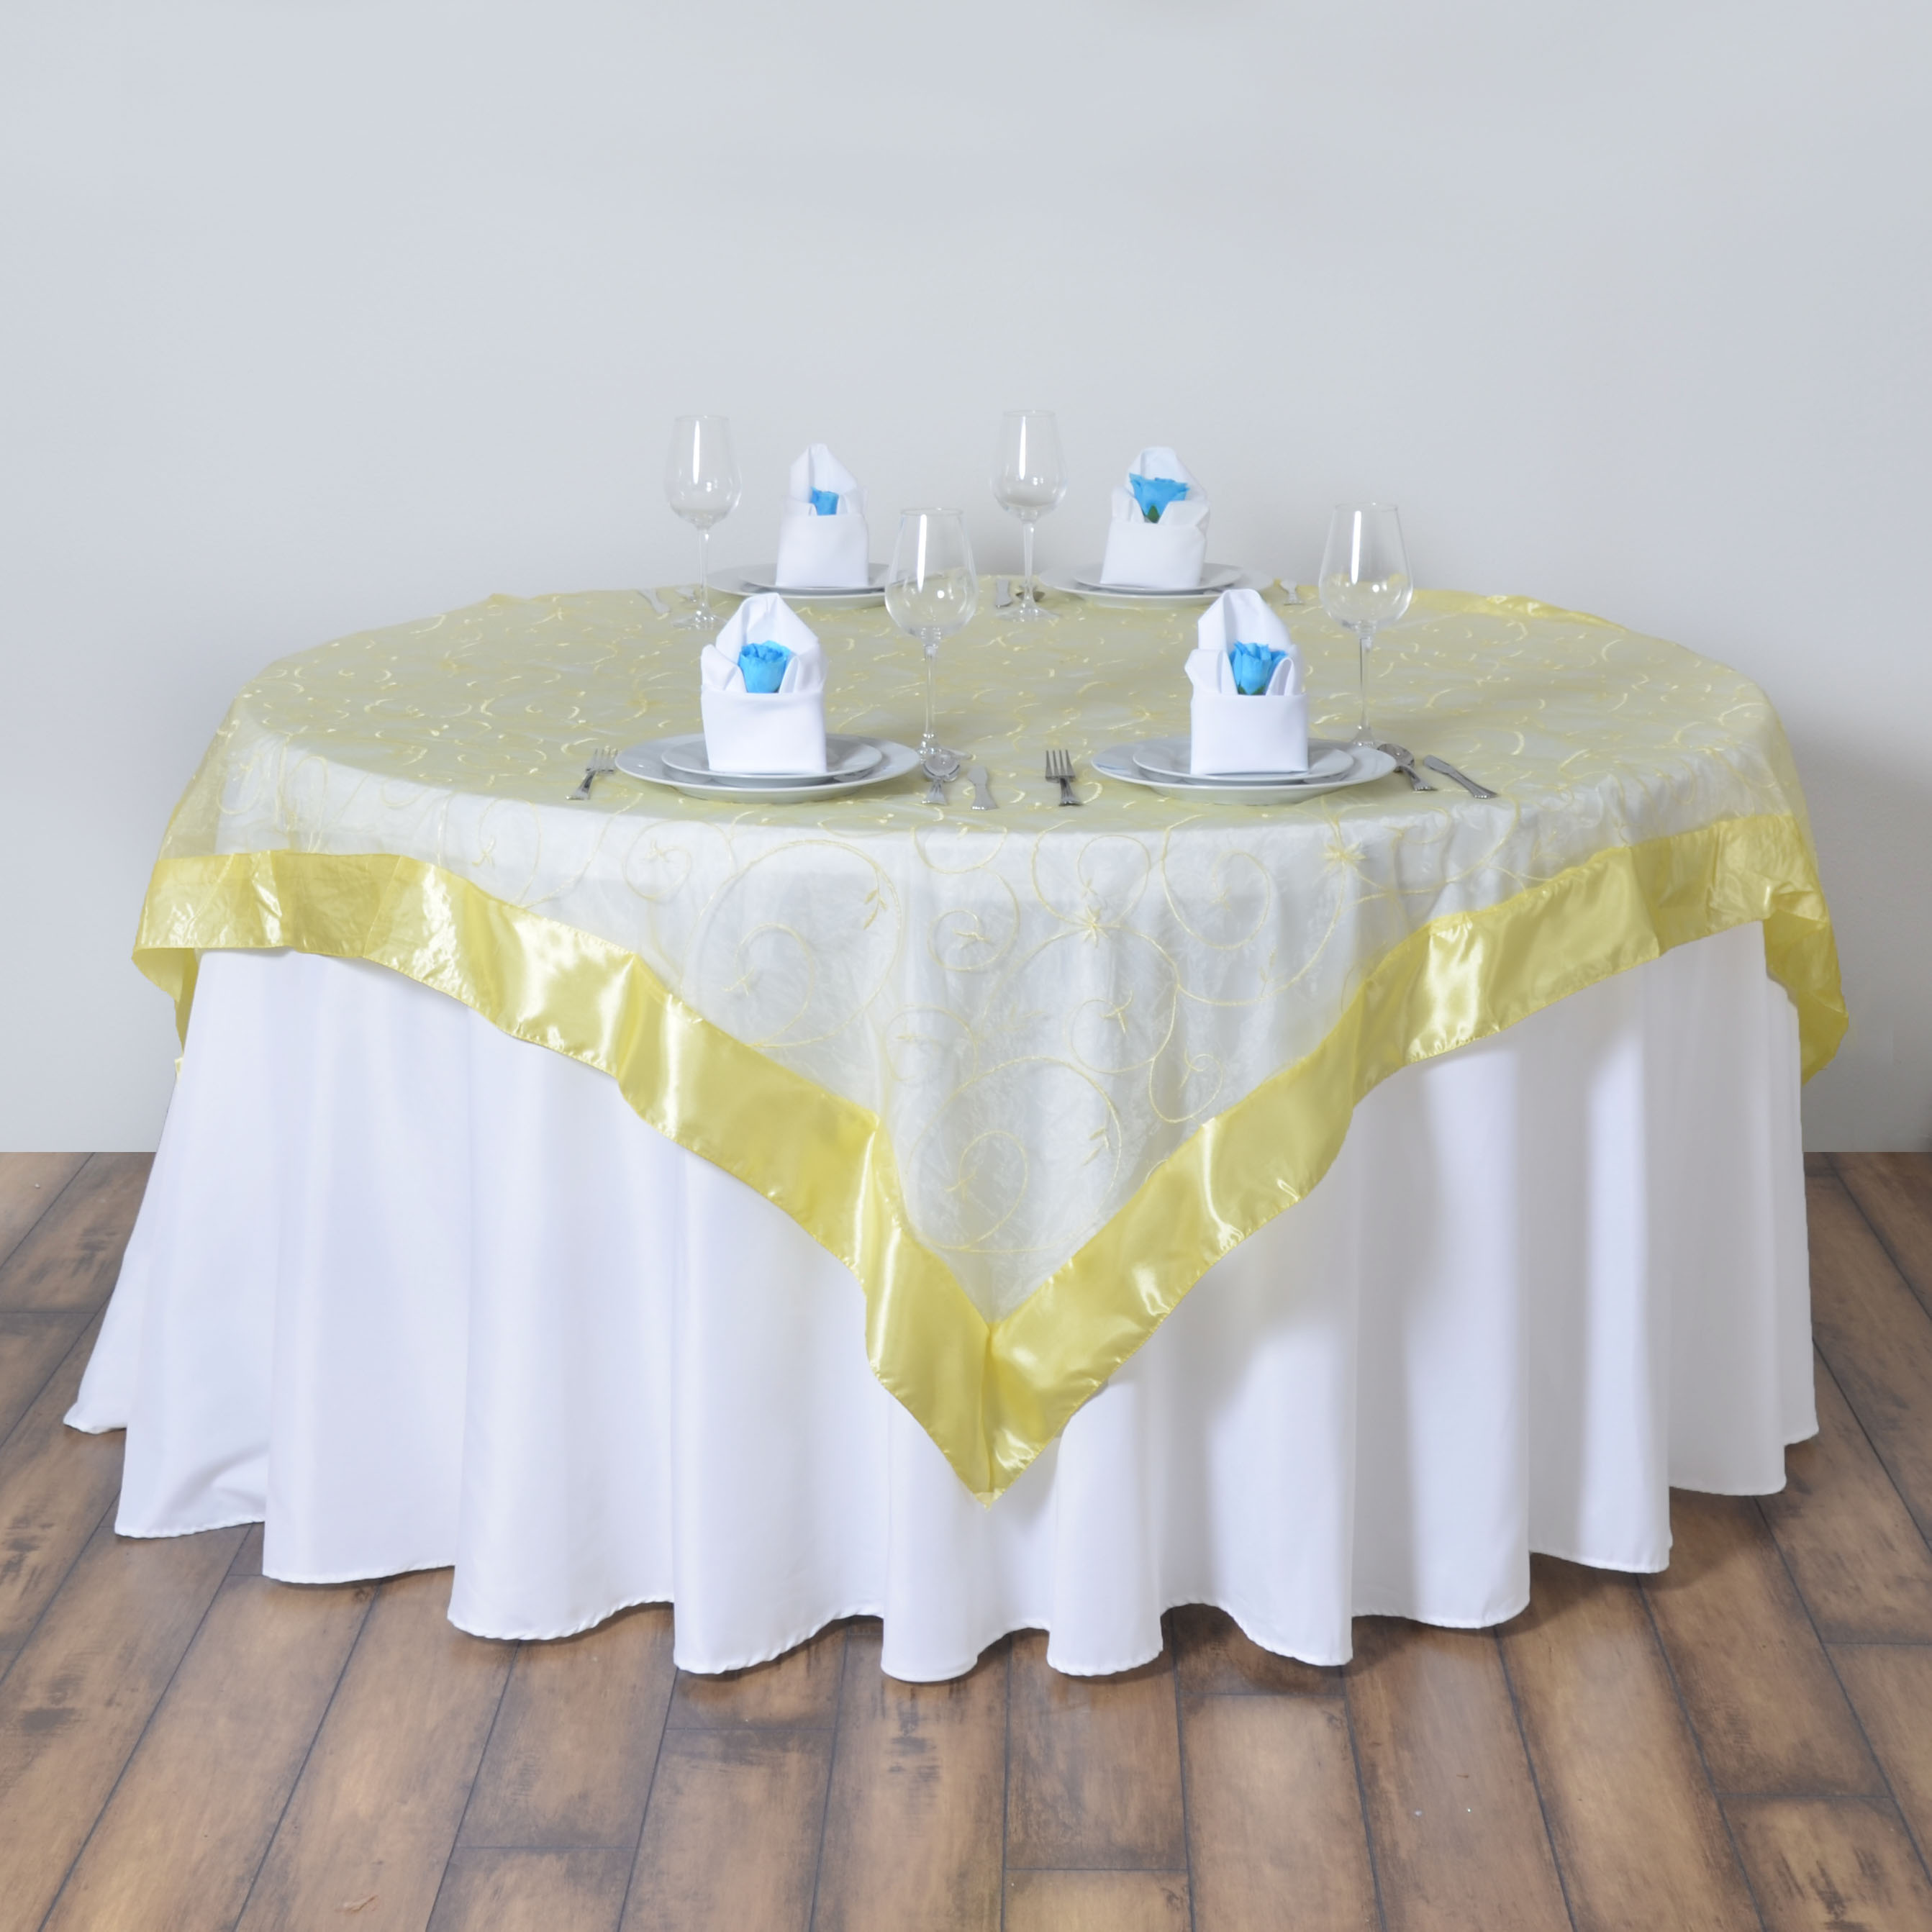 24 X Embroidered Organza 72x72 SQUARE Table OVERLAYS Wholesale Wedding